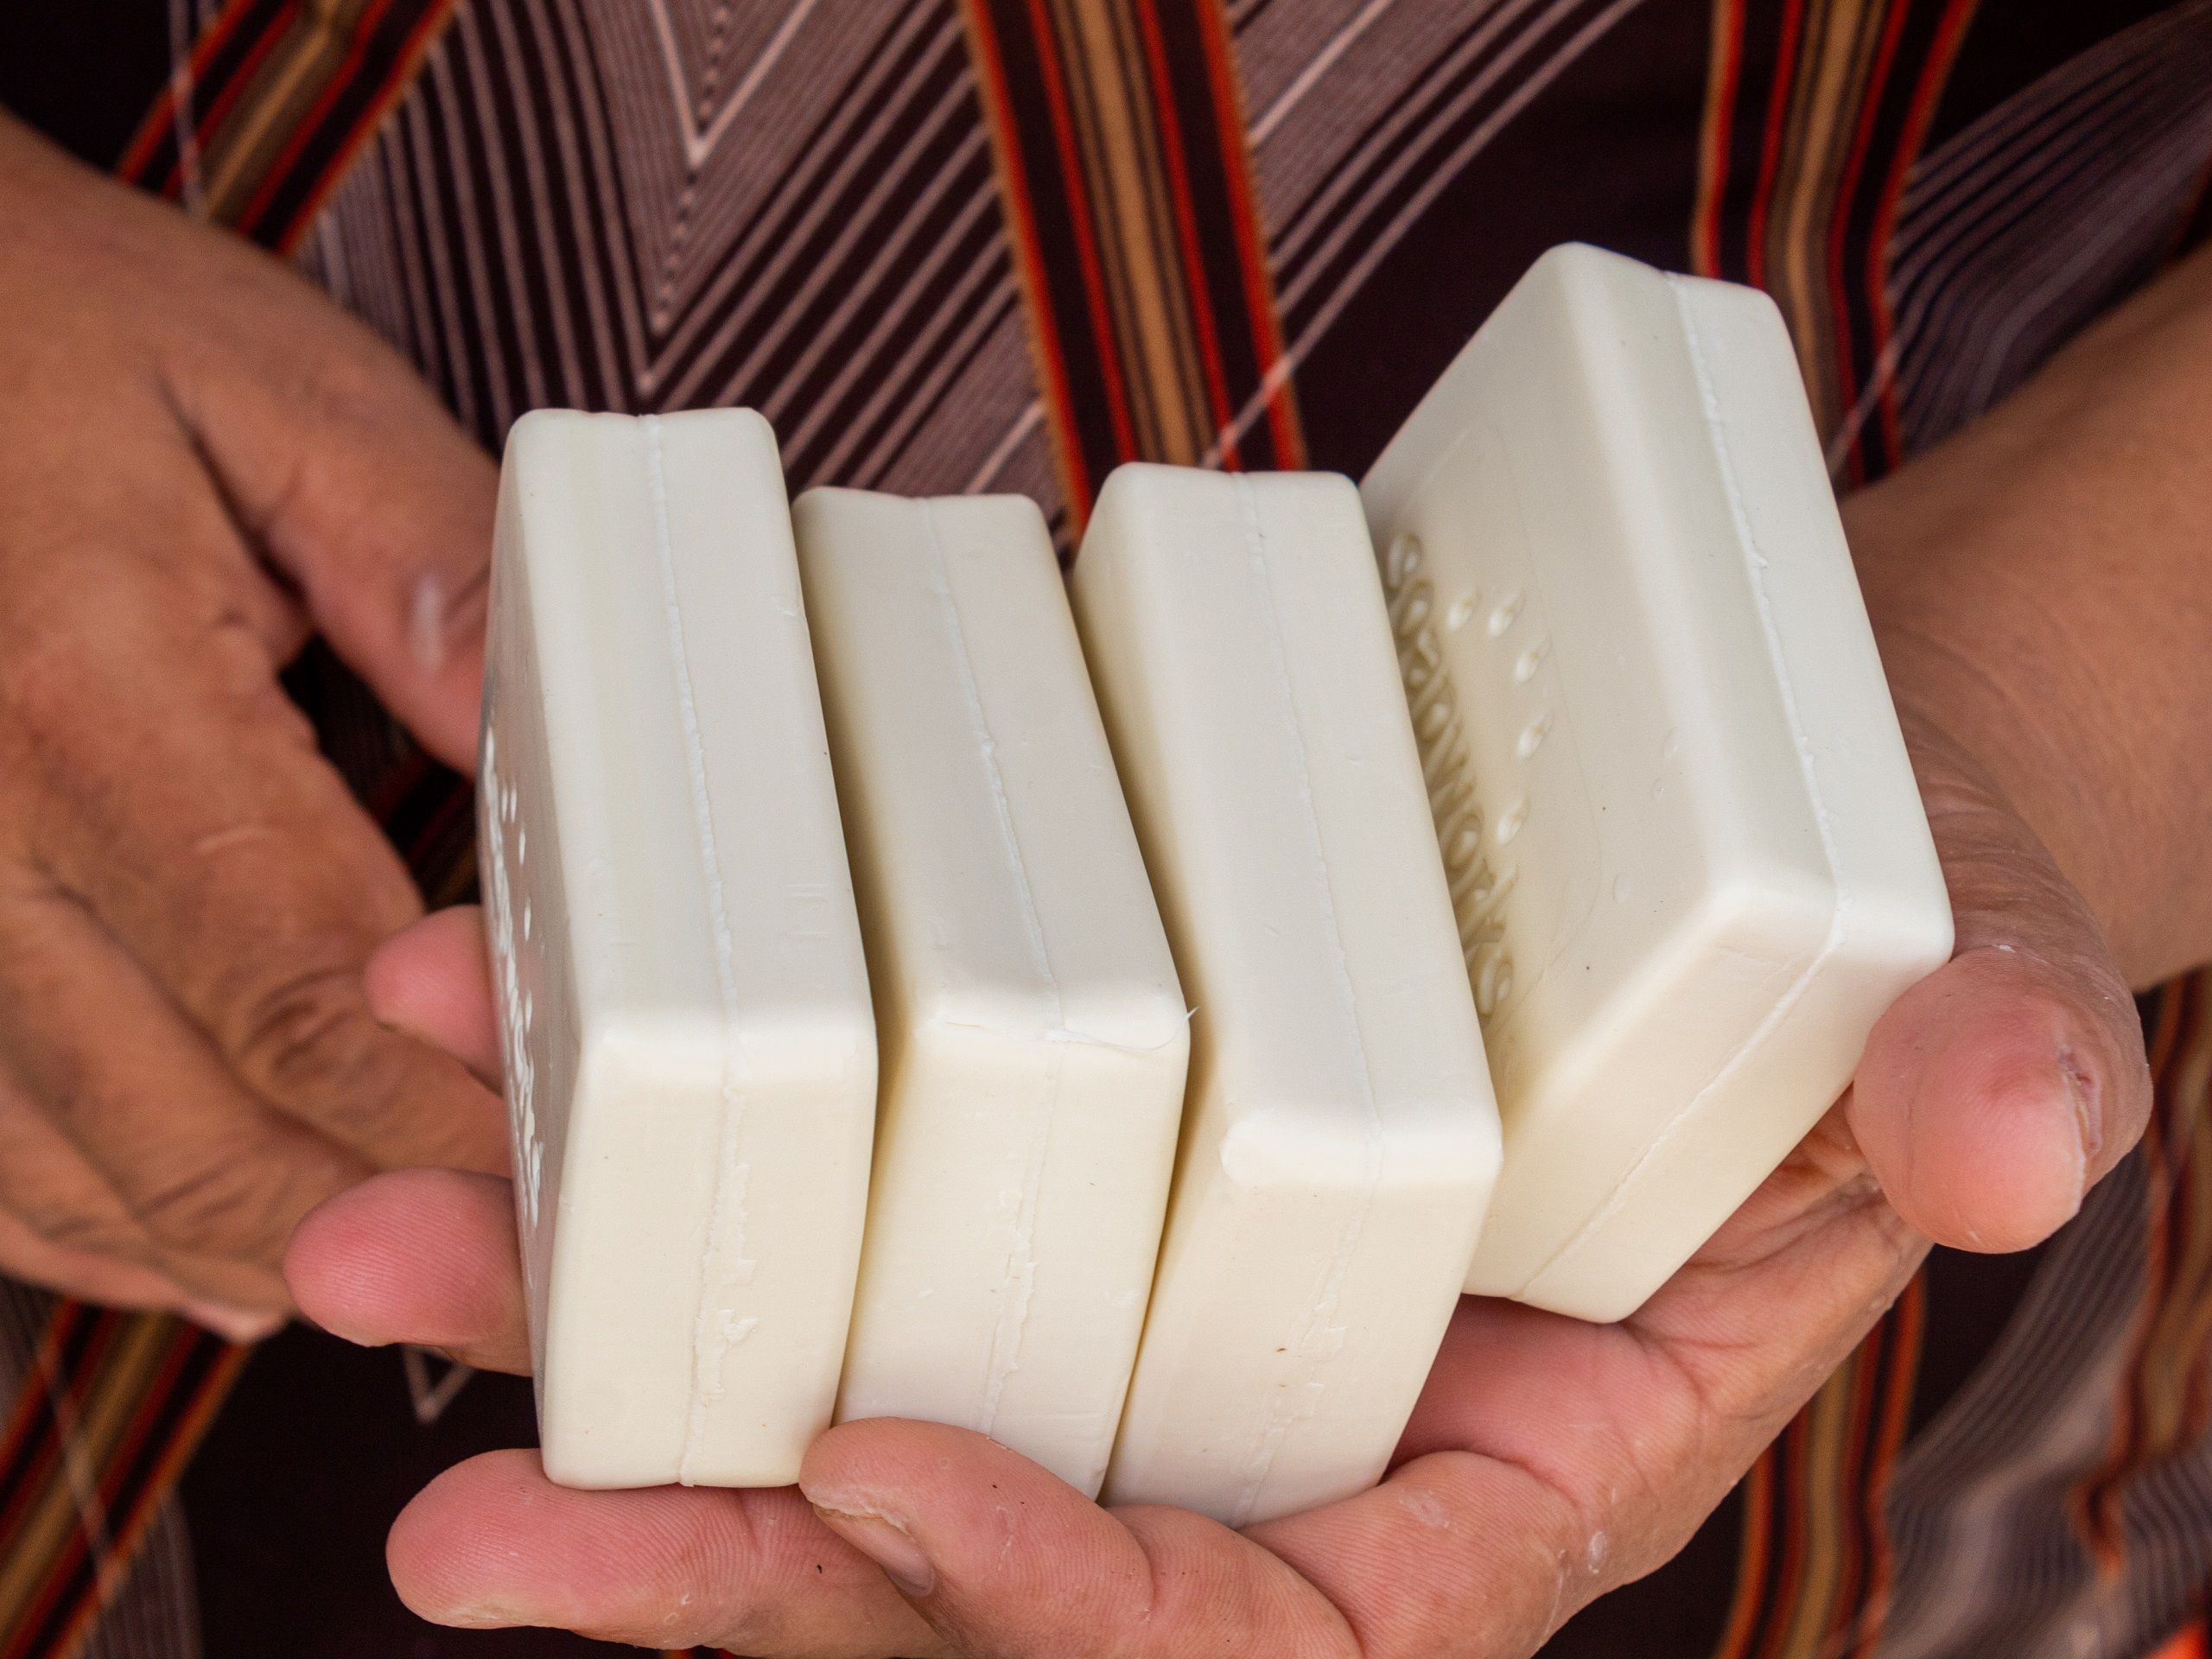 sustainable palm oil based soap